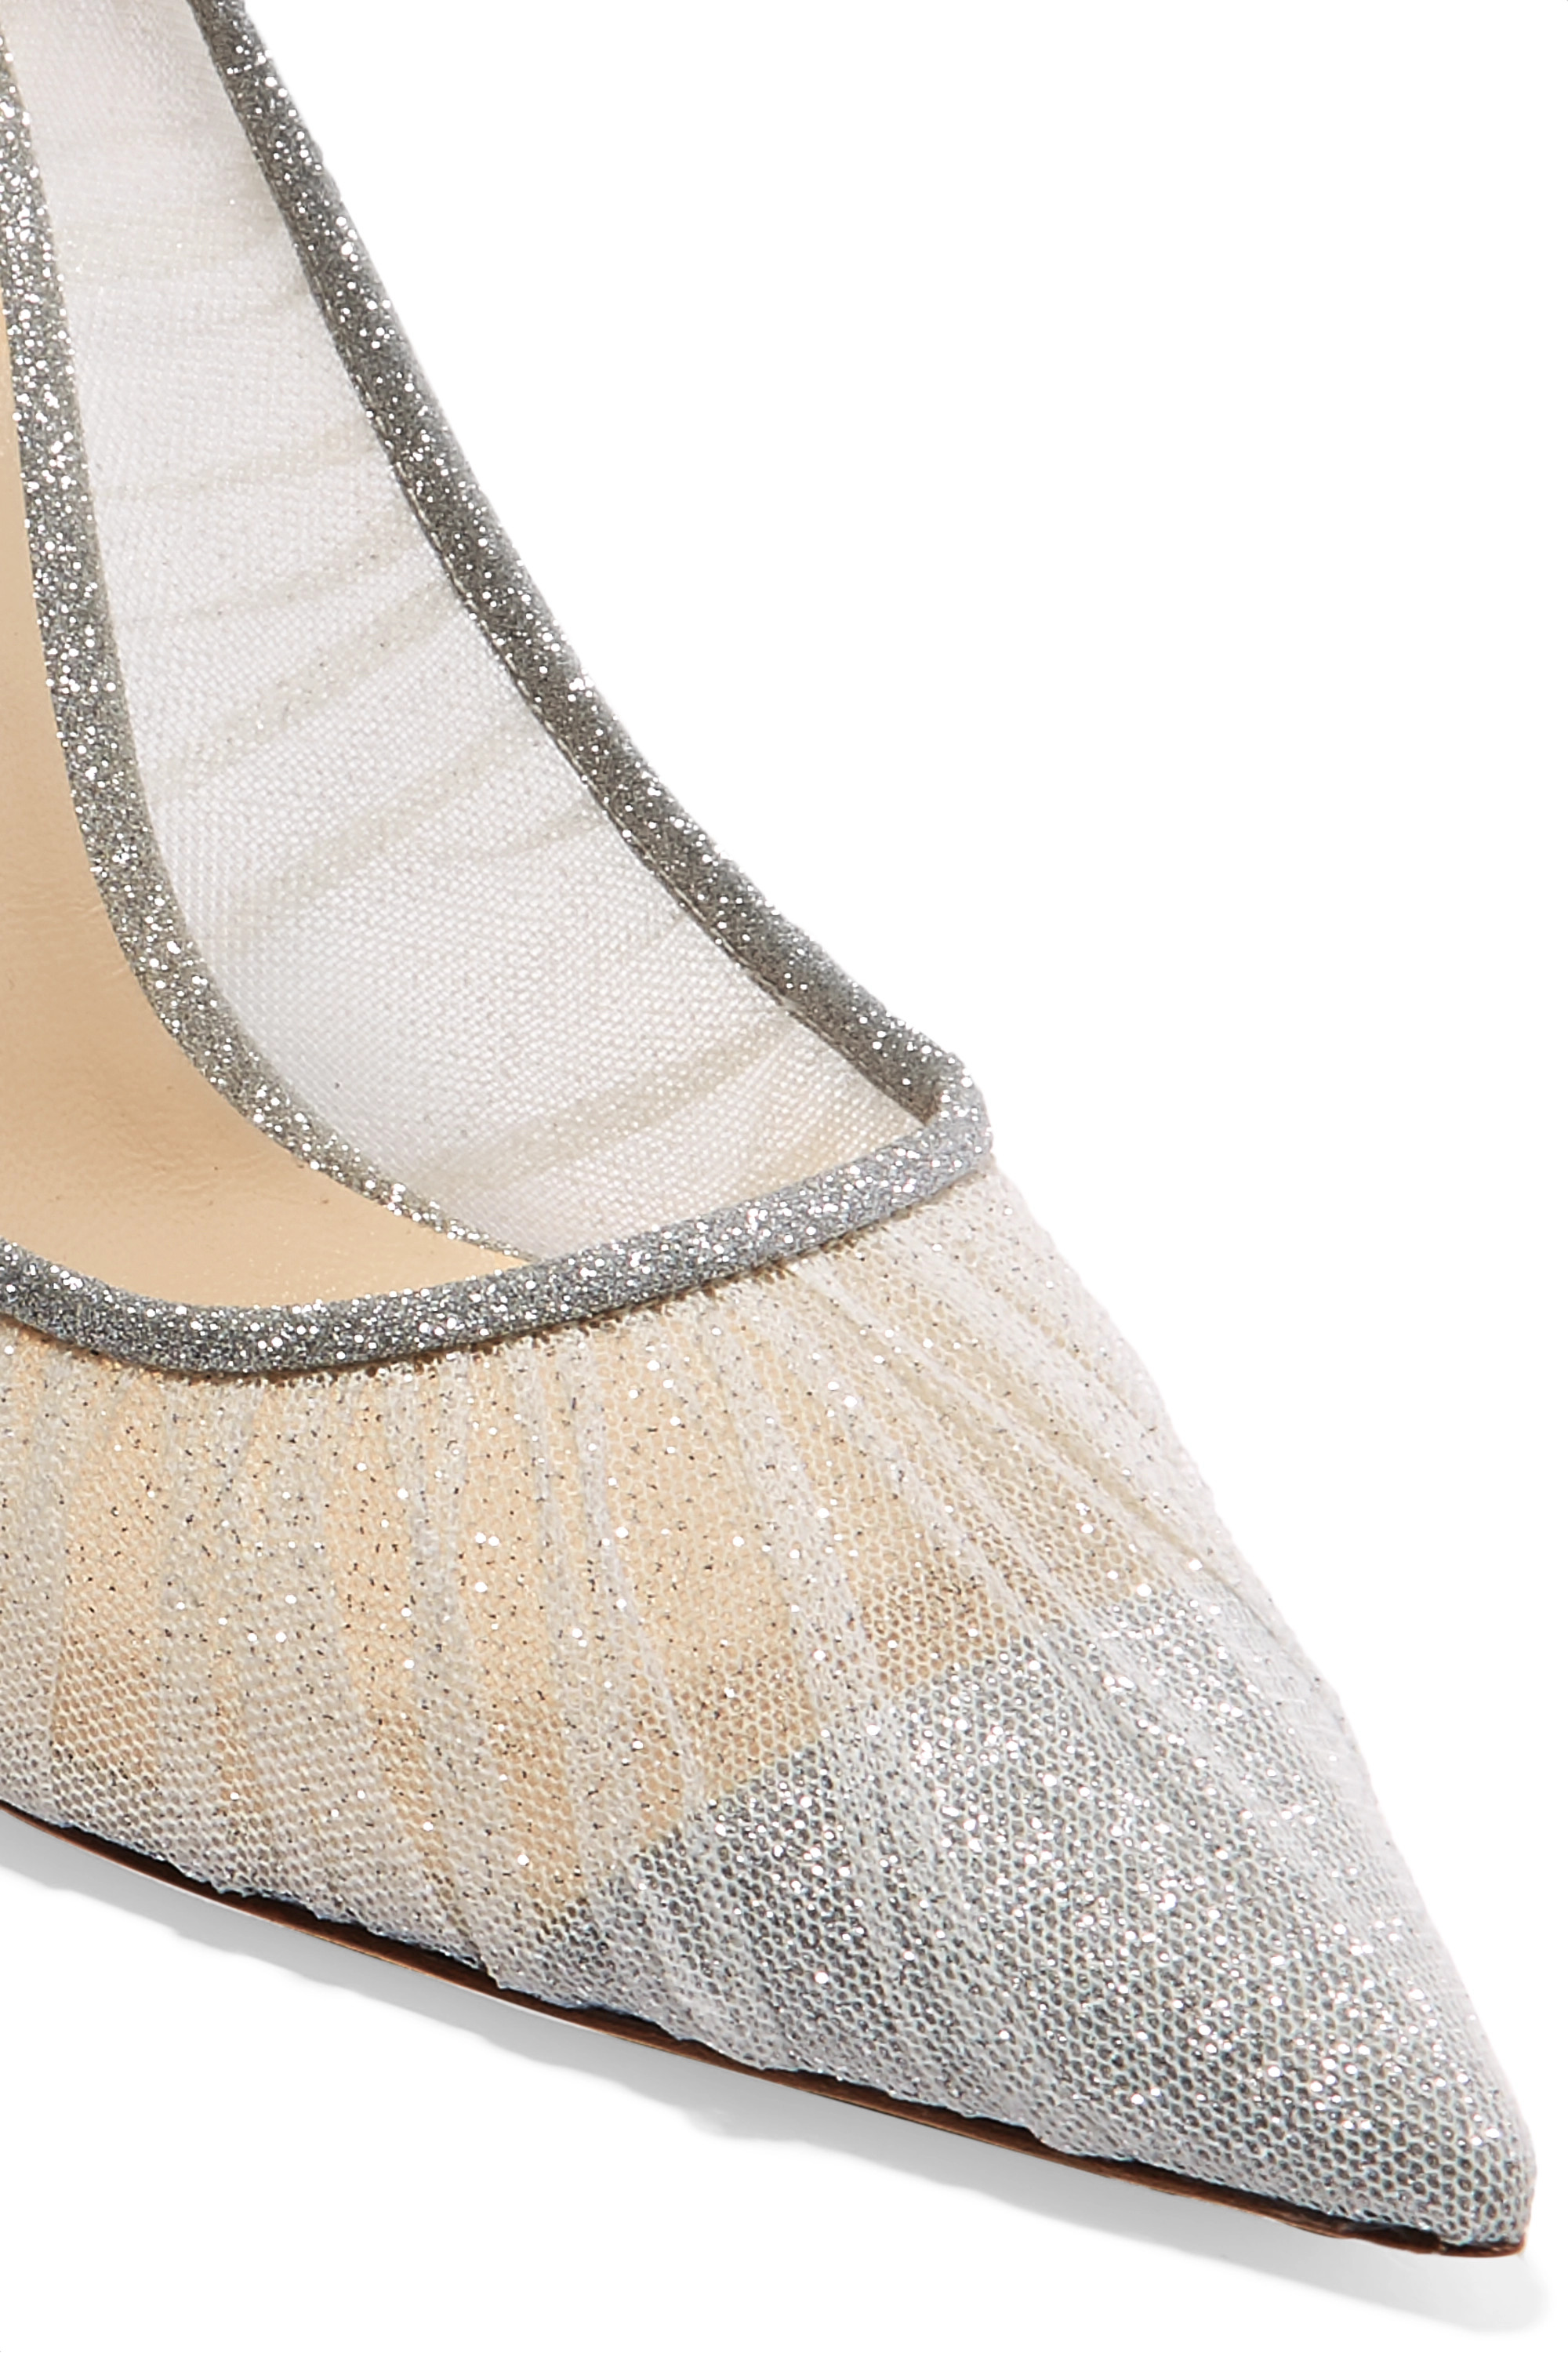 Jimmy Choo Love 100 glittered tulle and canvas pumps